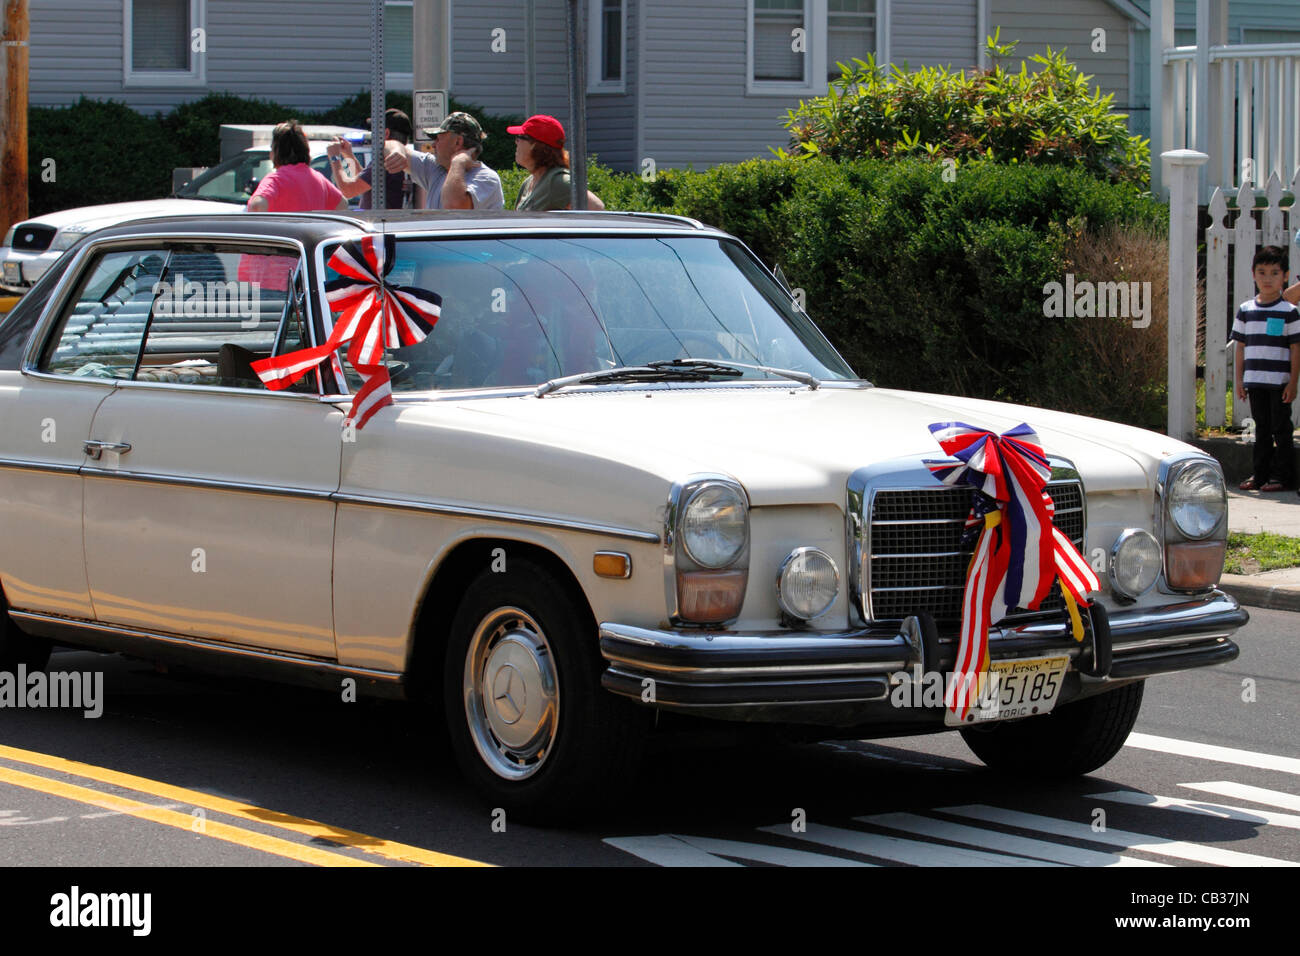 Vintage Mercedes Benz Decorated With Red White And Blue Ribbons In Memorial Day Parade